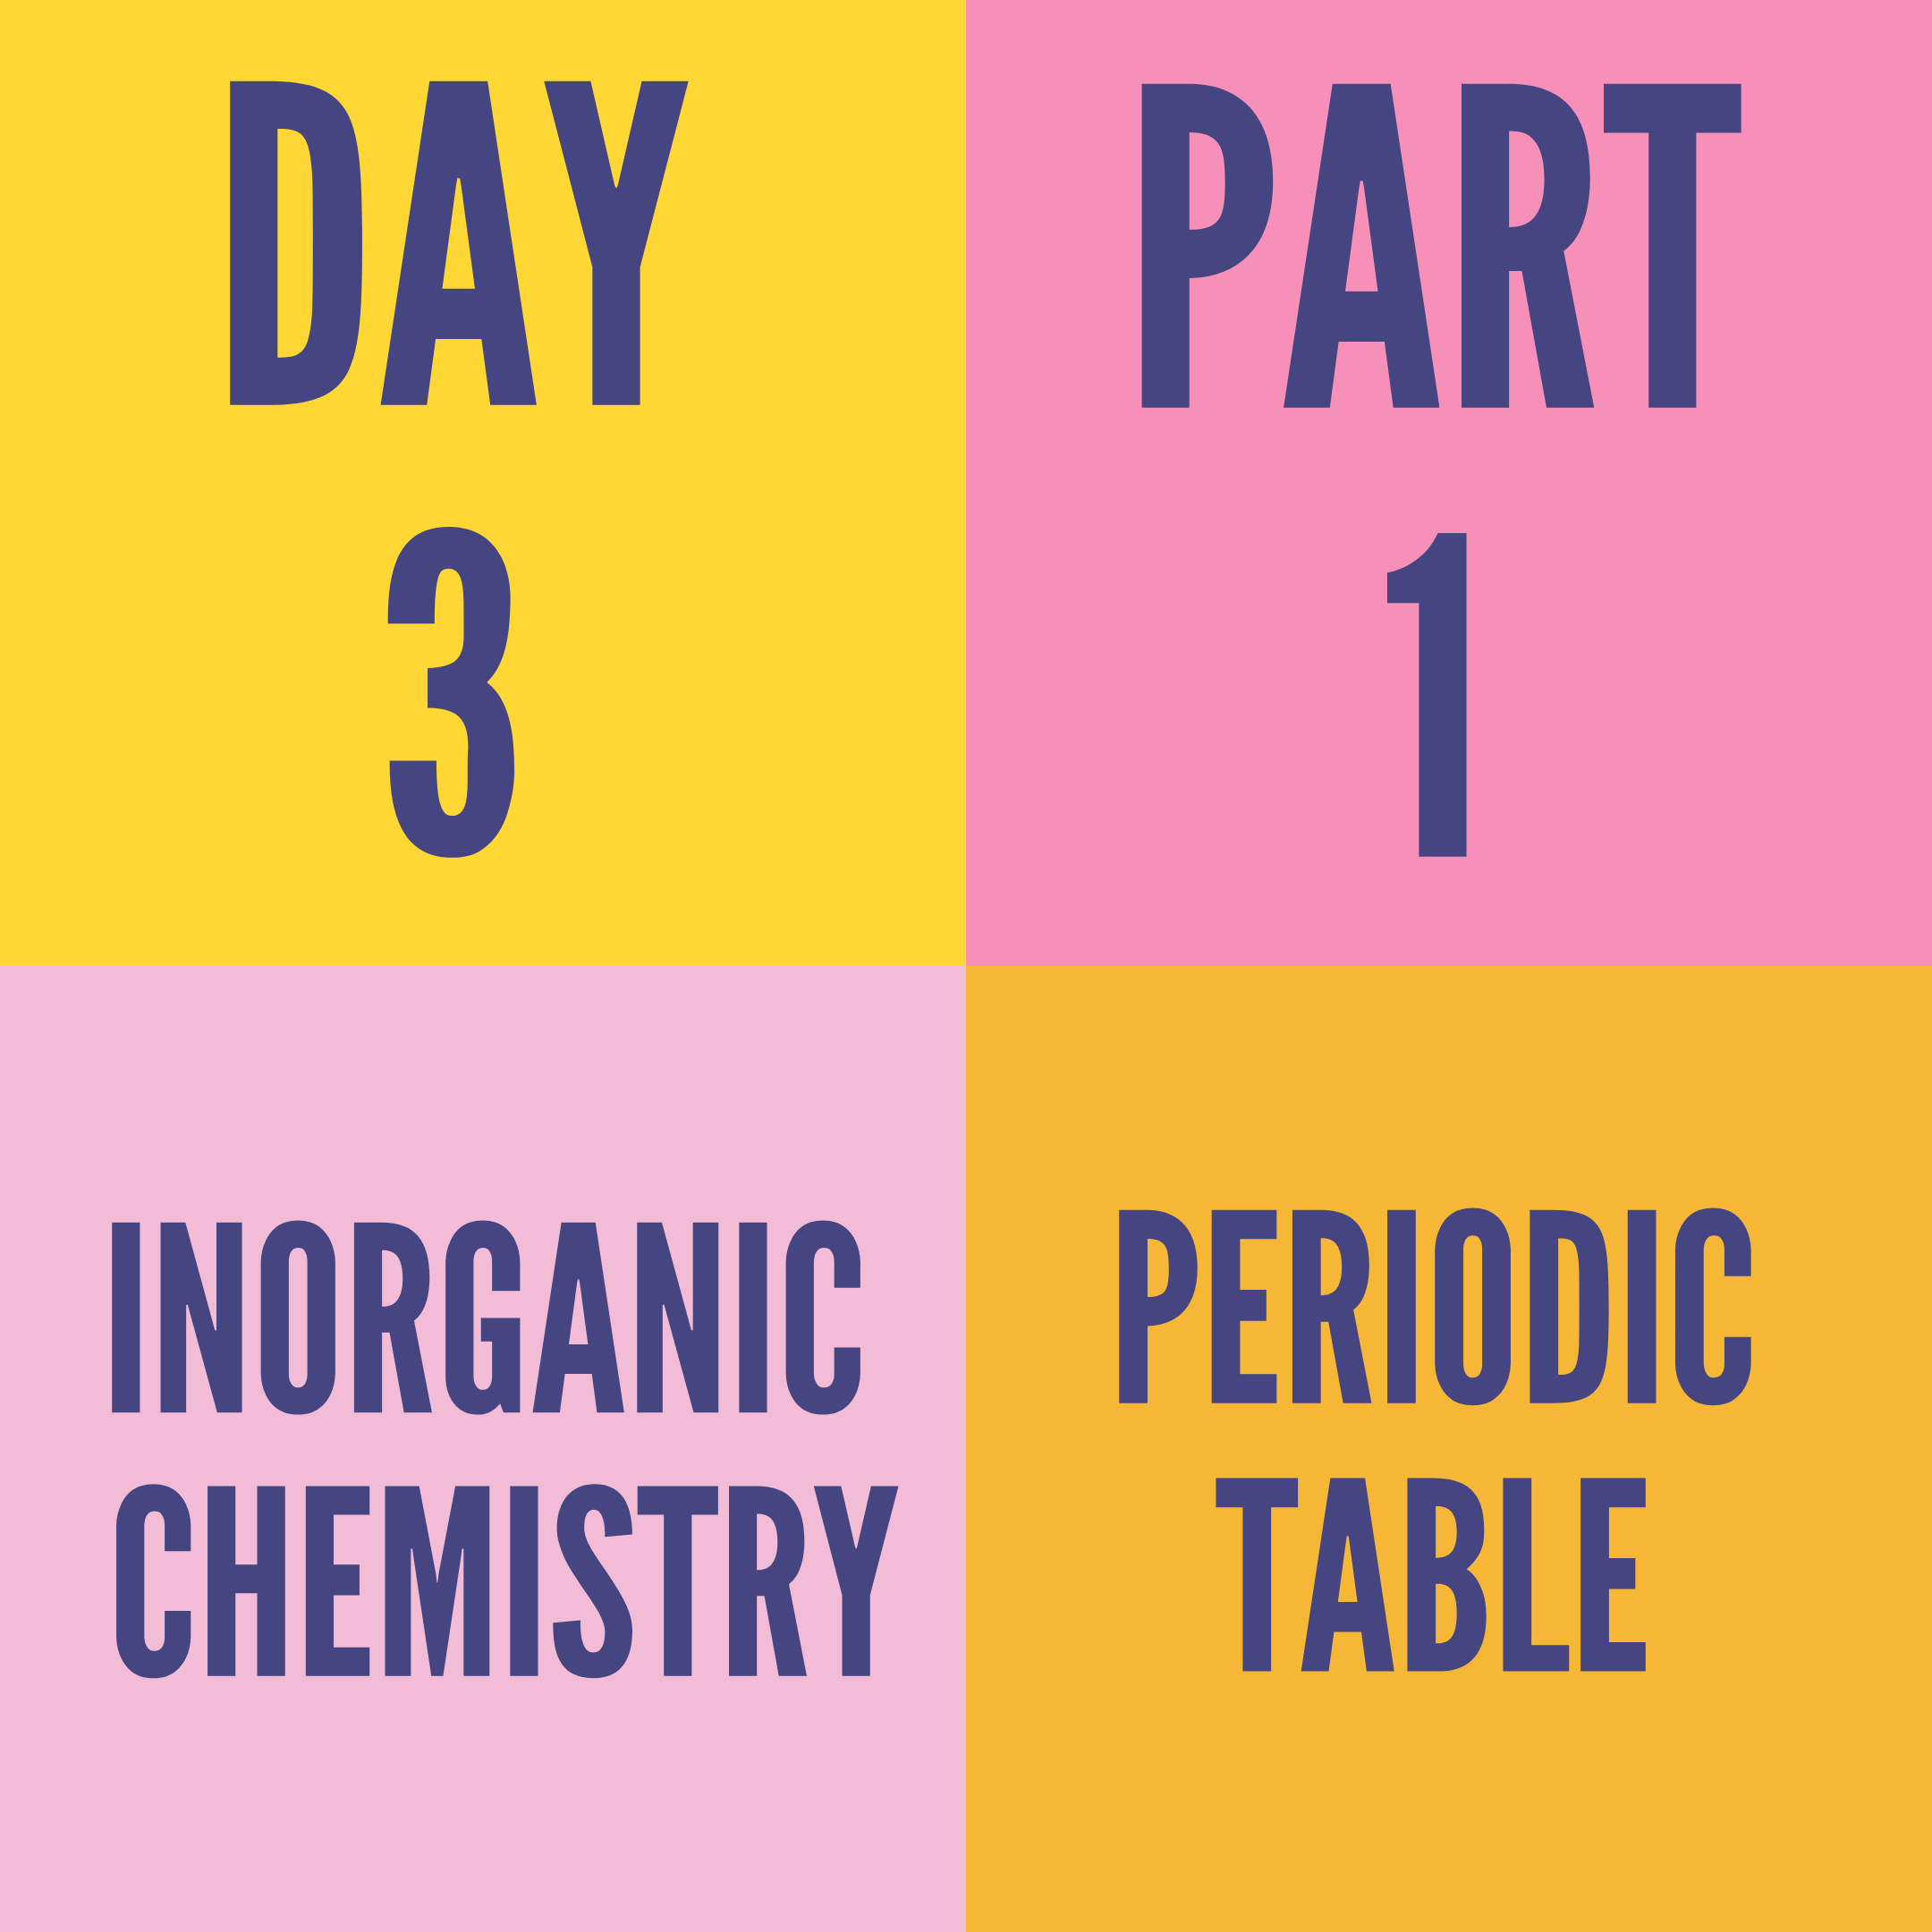 DAY-3 PART-1 PERIODIC TABLE